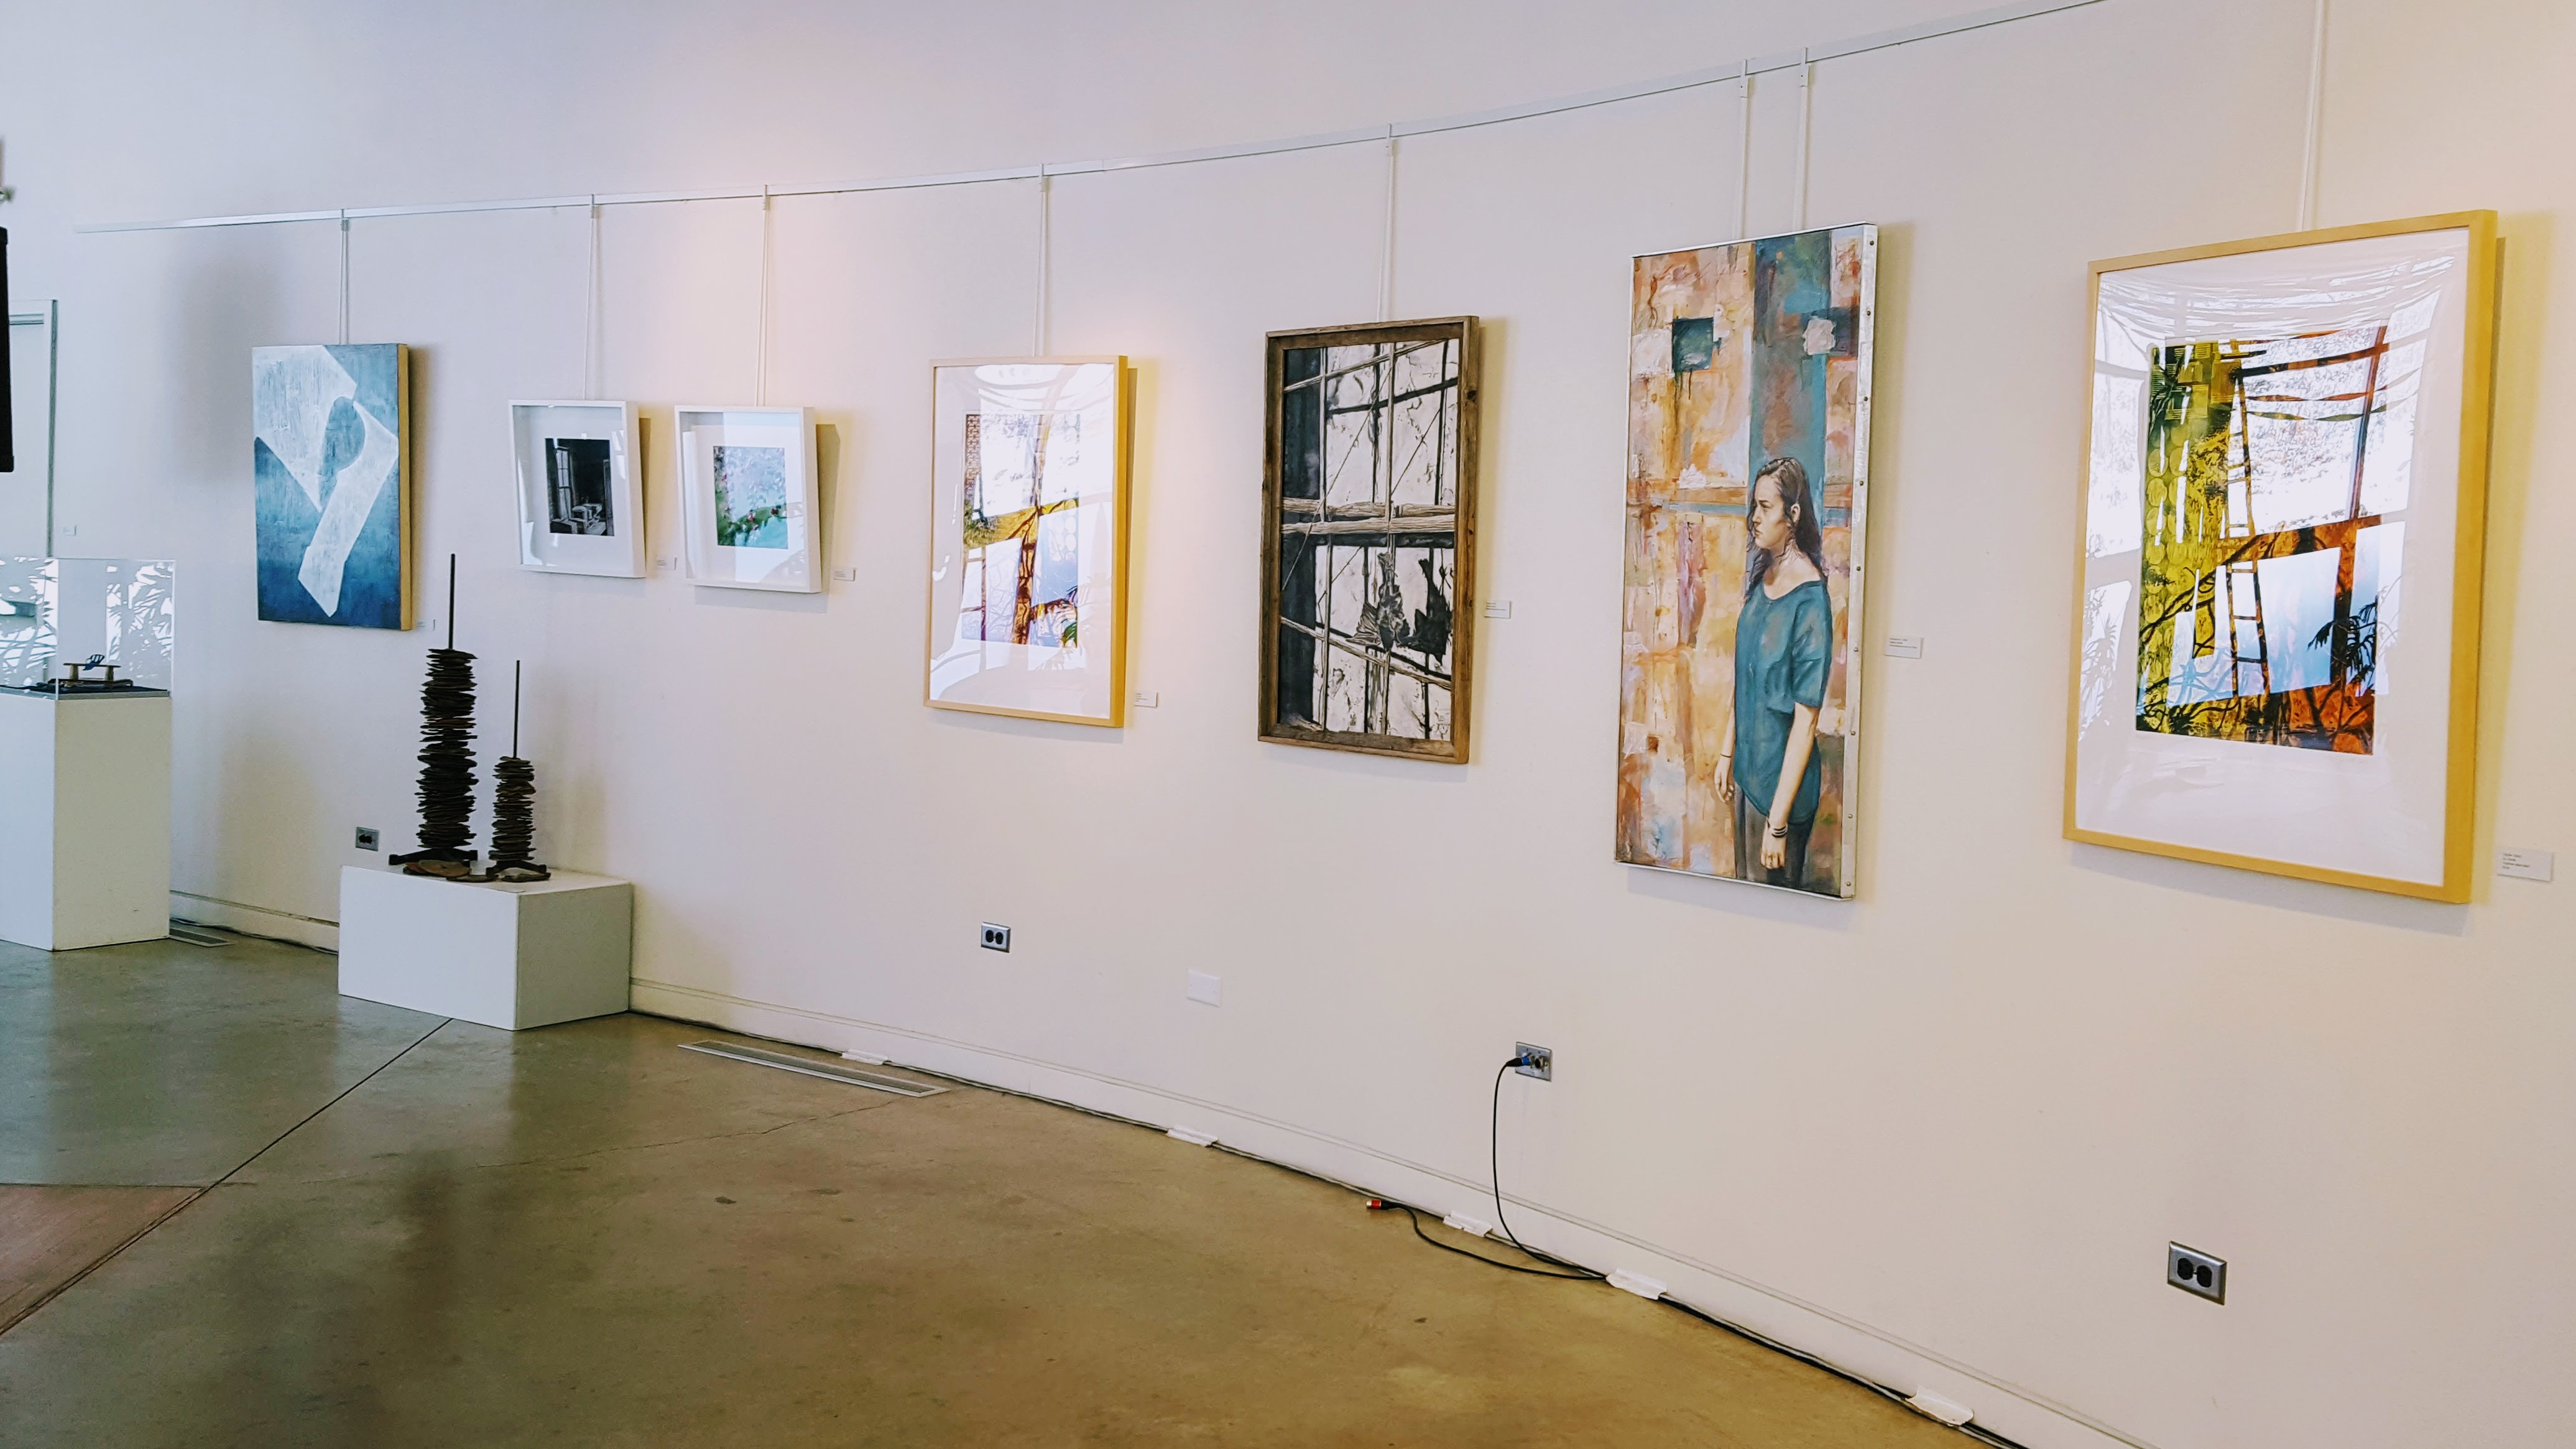 Passing Voices Exhibition - Installation View 1